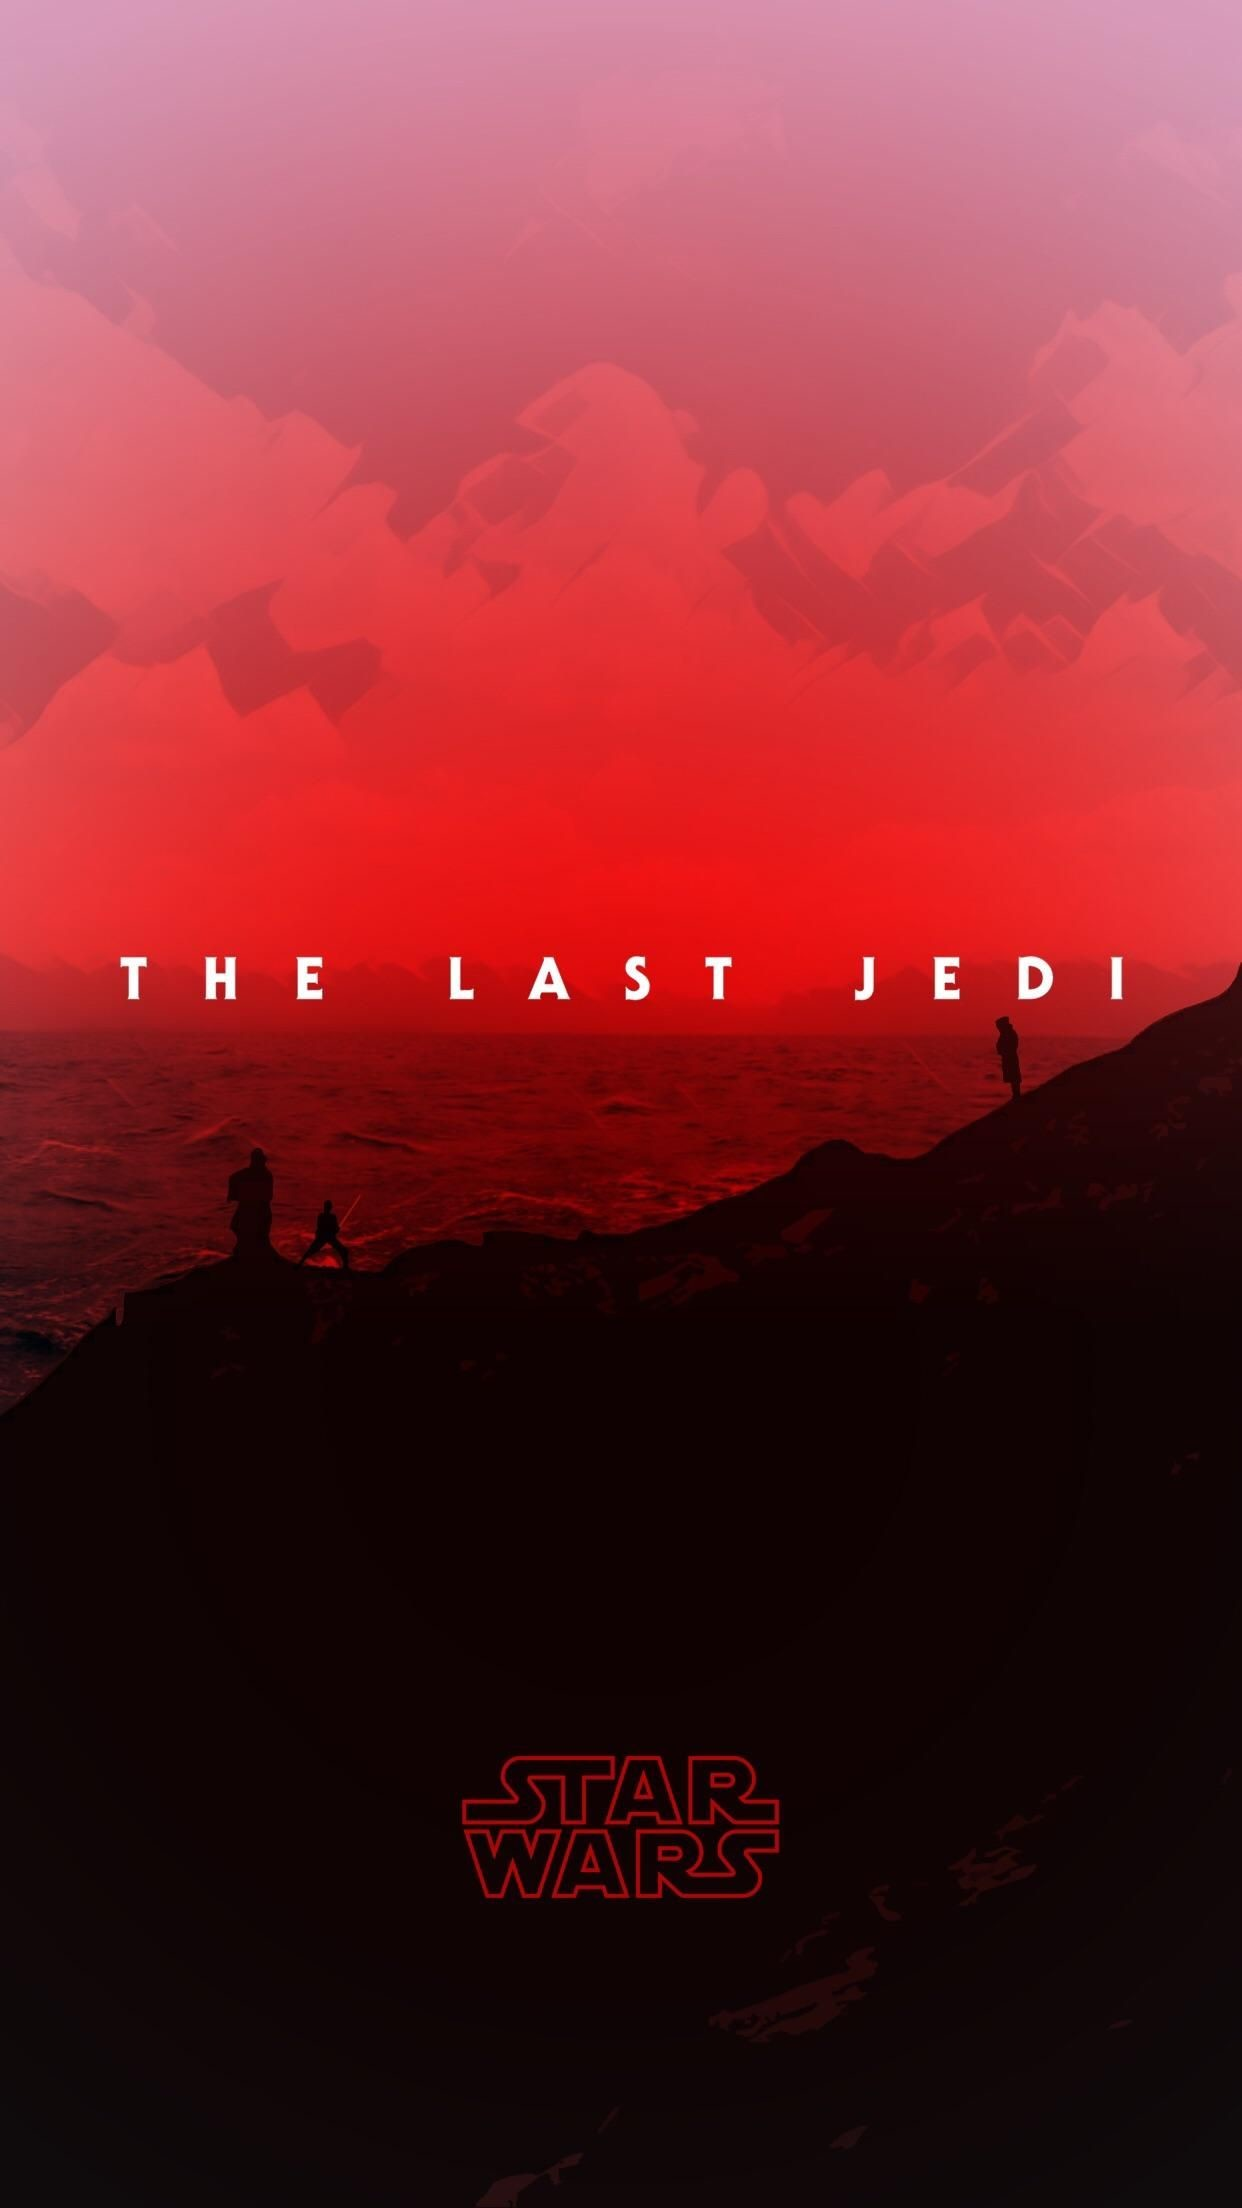 Res: 1242x2208, Star Wars: The Last Jedi (2017) HD Wallpaper From Gallsource.com